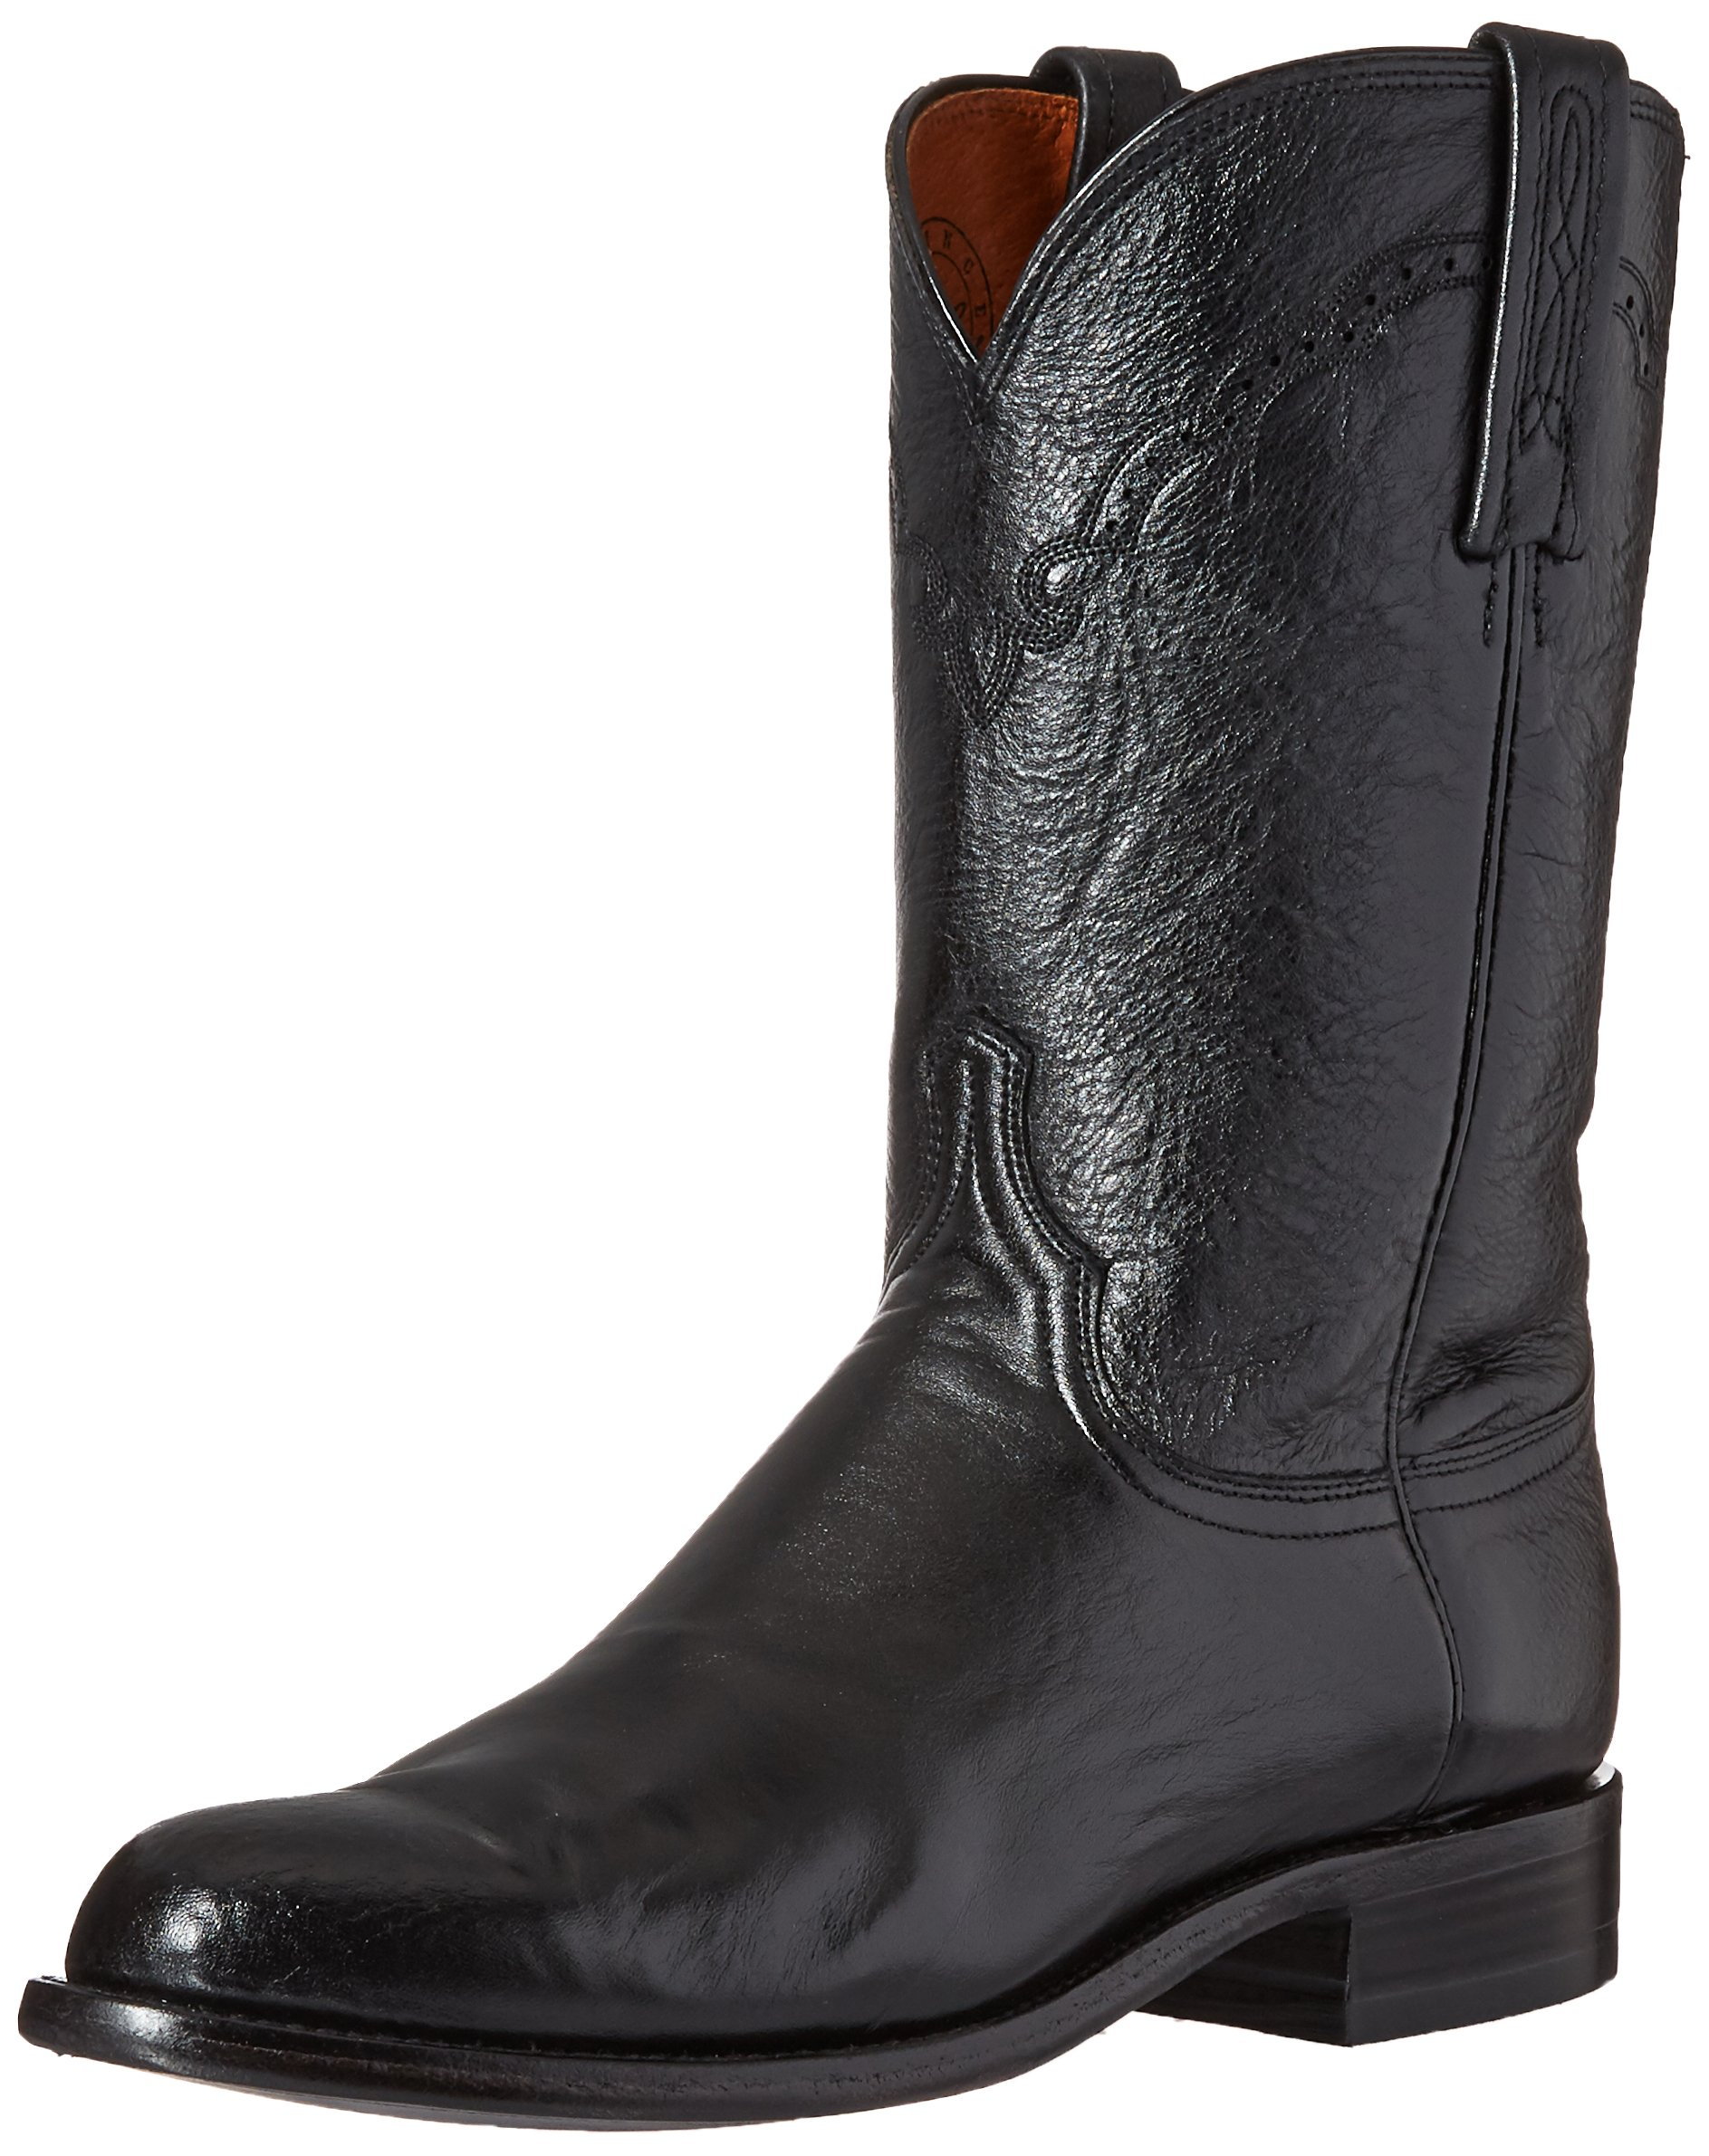 Lucchese Classics Men's Lawrence-Blk Lonestar Calf Roper Riding Boot, Black, 10.5 D US by Lucchese Bootmaker